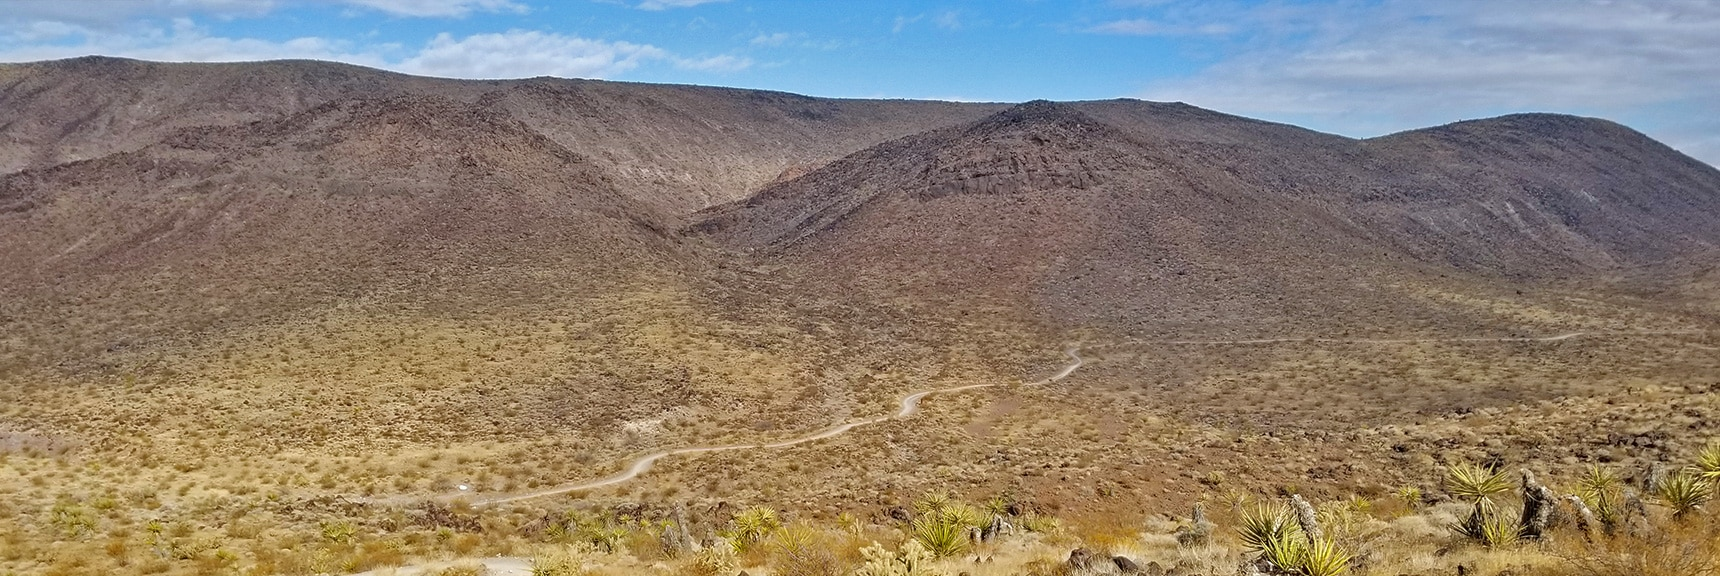 Looking Back Down the Trail Toward the Trailhead. Have Gained a Lot of Elevation!   McCullough Hills Trail in Sloan Canyon National Conservation Area, Nevada